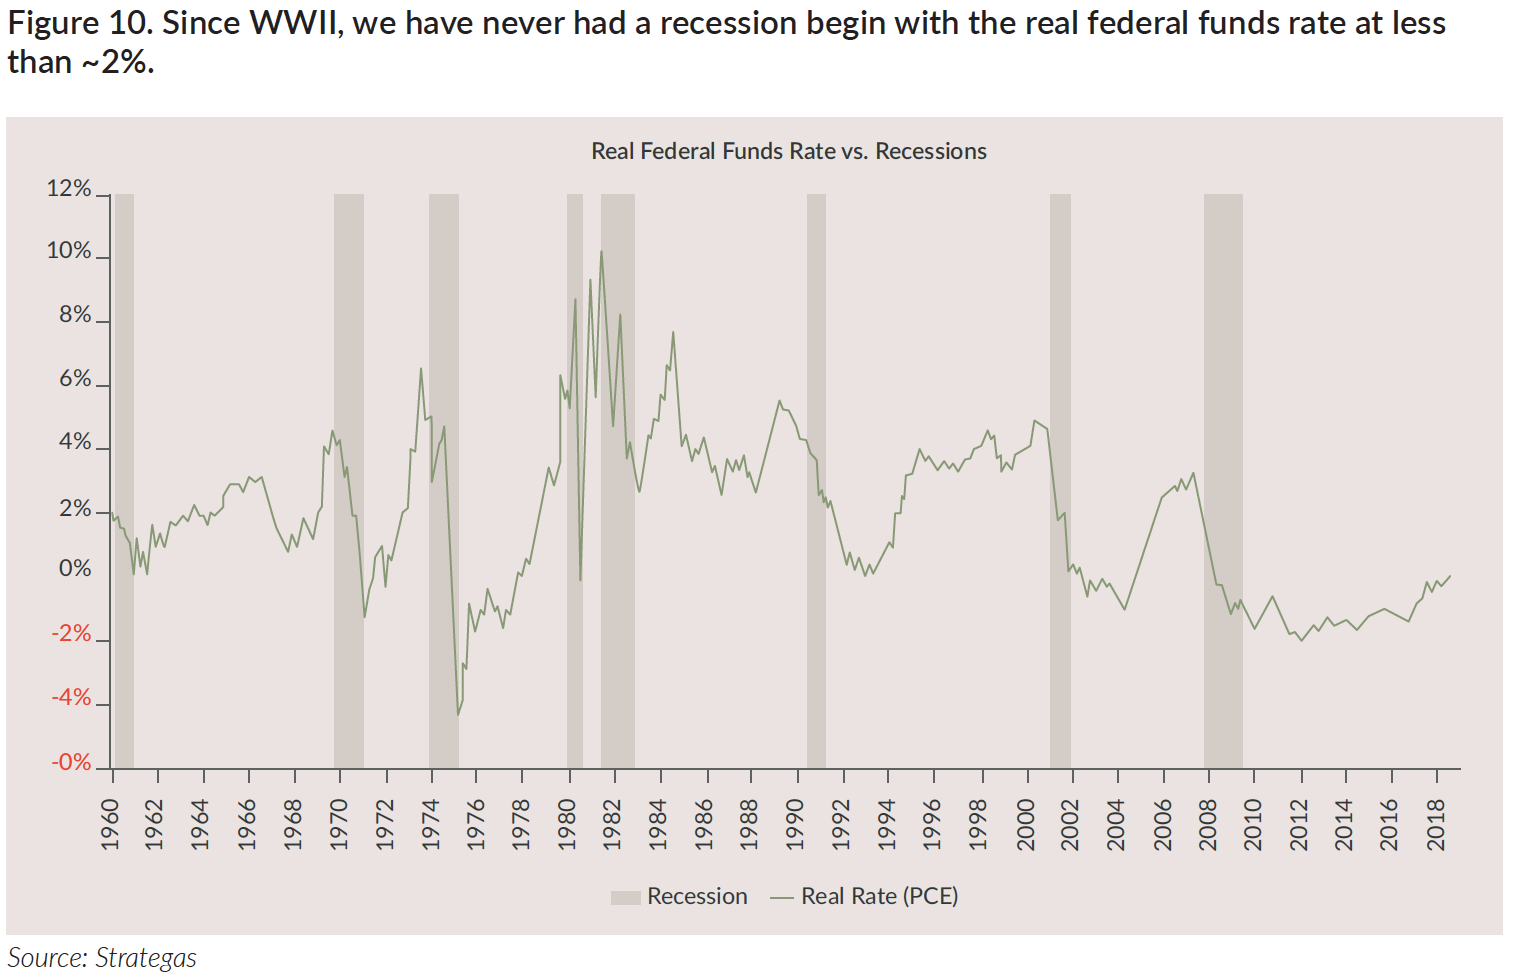 Real Federal Funds Rate vs. Recessions